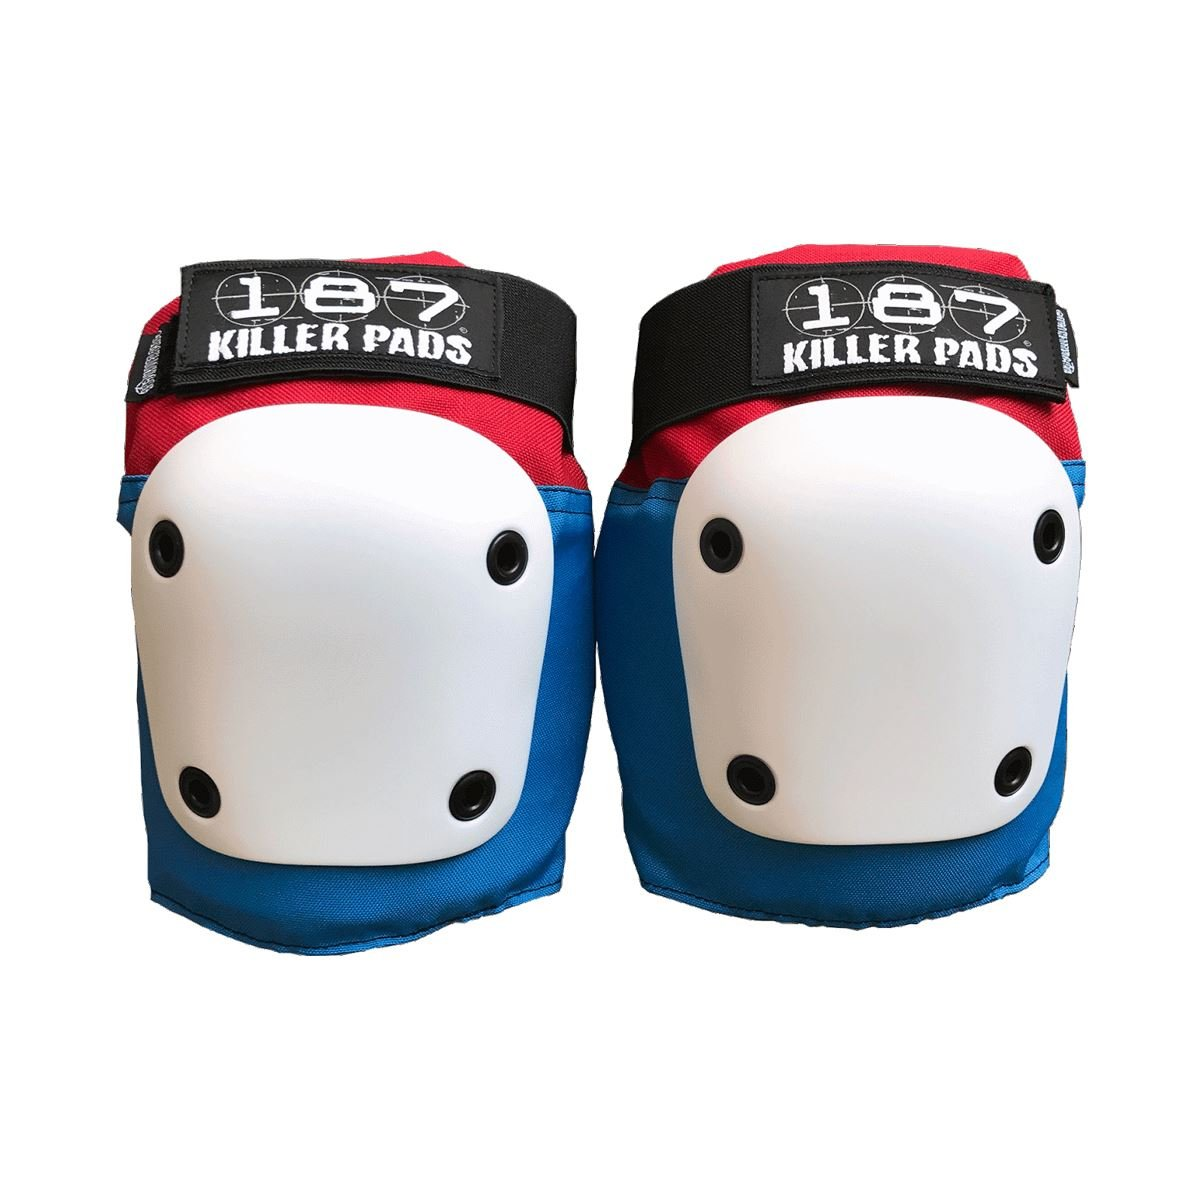 187 Killer Pads Fly Knee (Red/White/Blue, Medium)